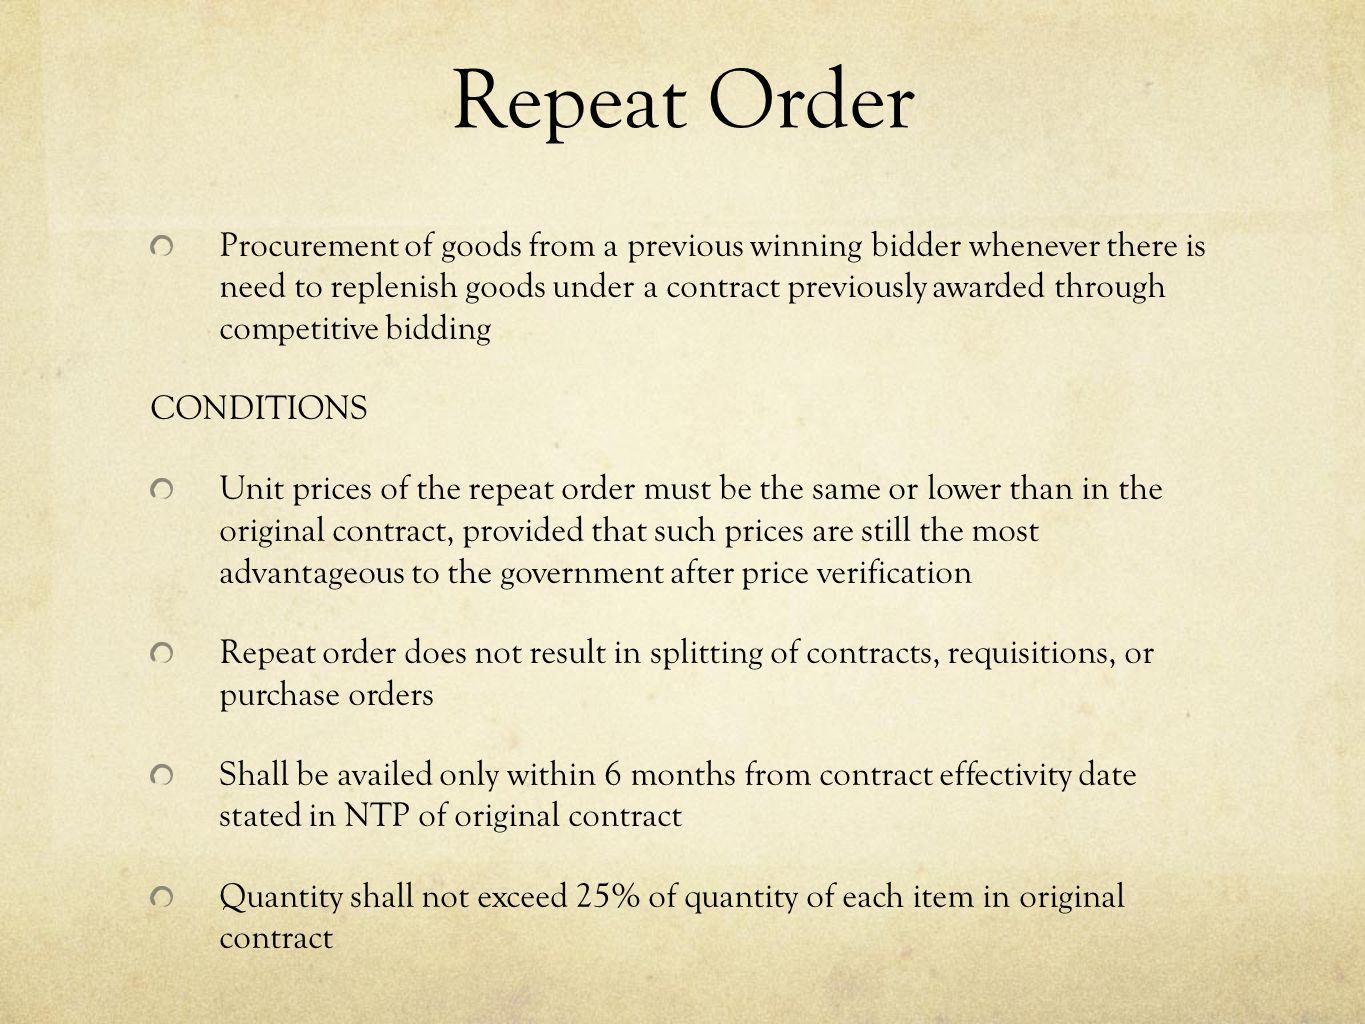 Repeat Order Procurement of goods from a previous winning bidder whenever there is need to replenish goods under a contract previously awarded through